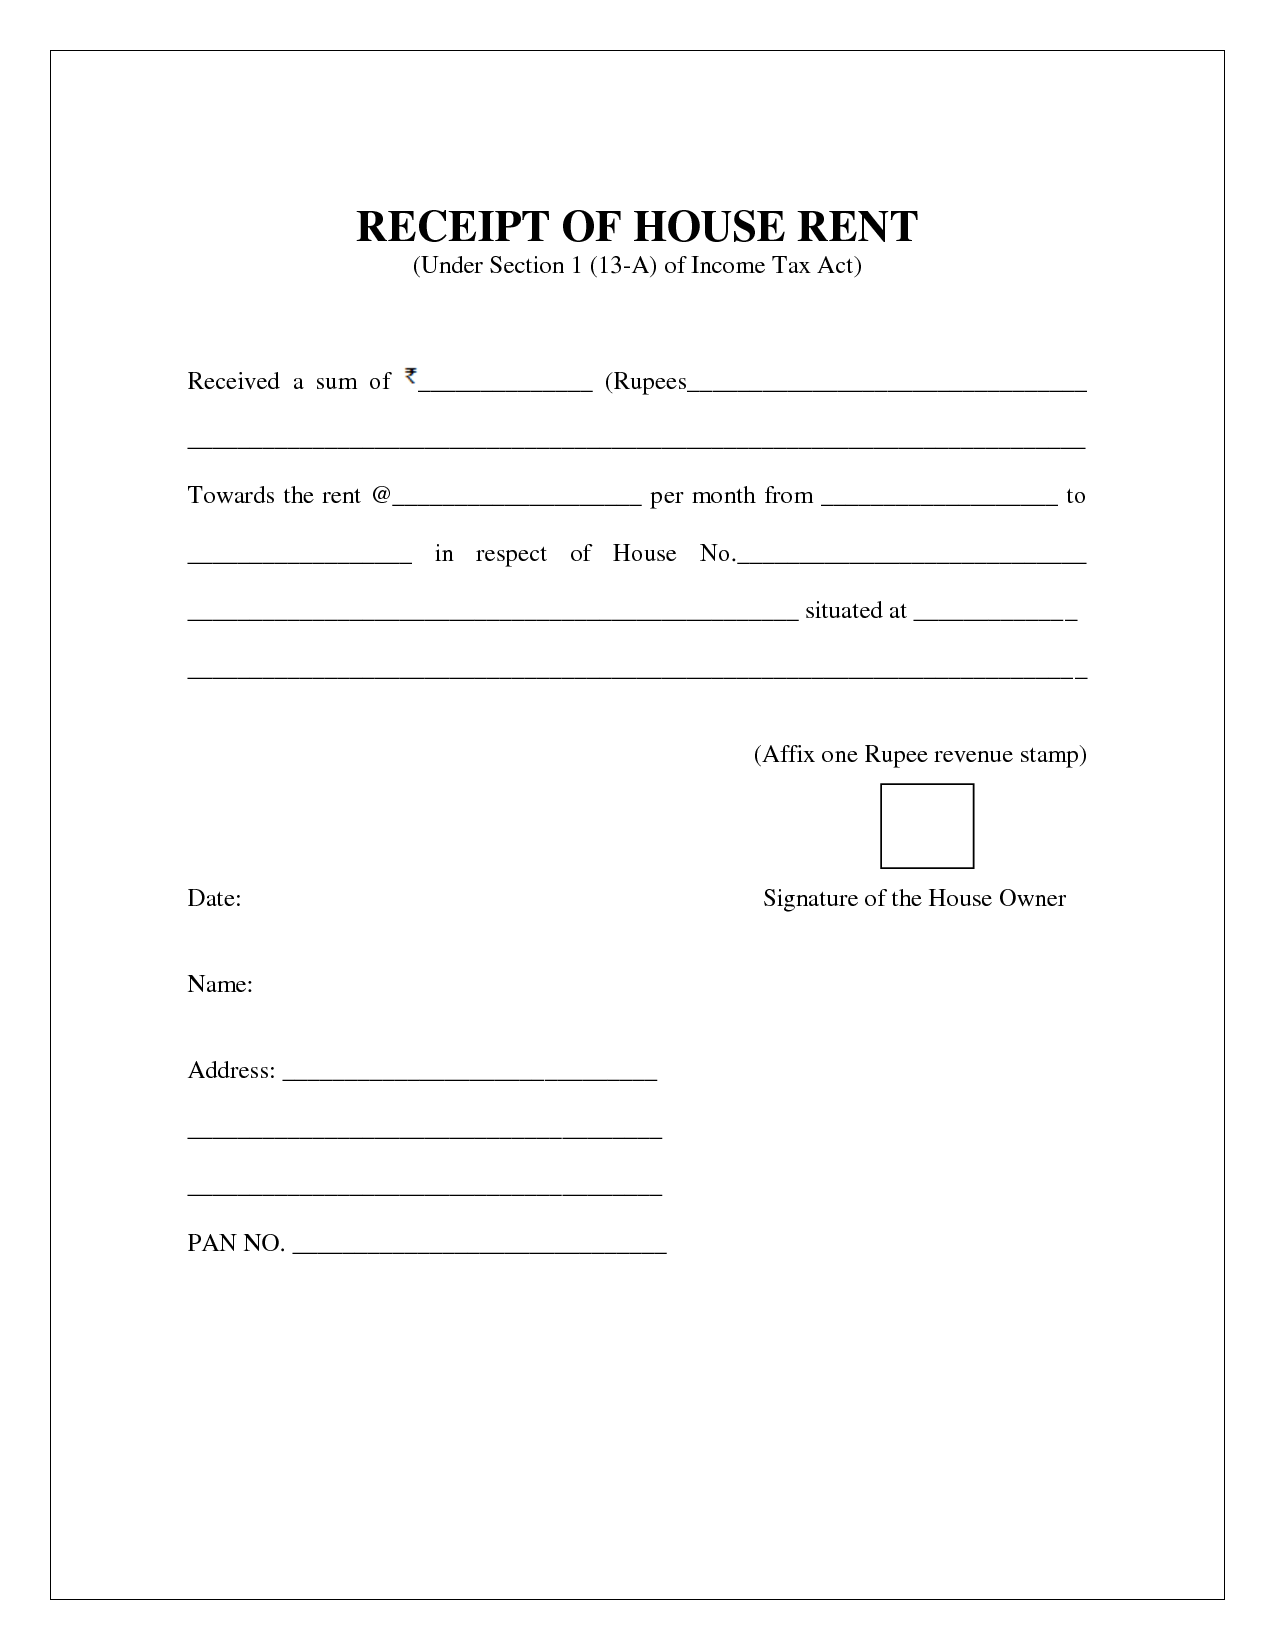 Delightful Template   Hillaryrain.co   Best Resumes And Templates For Your ... For House Rent Receipt Format India